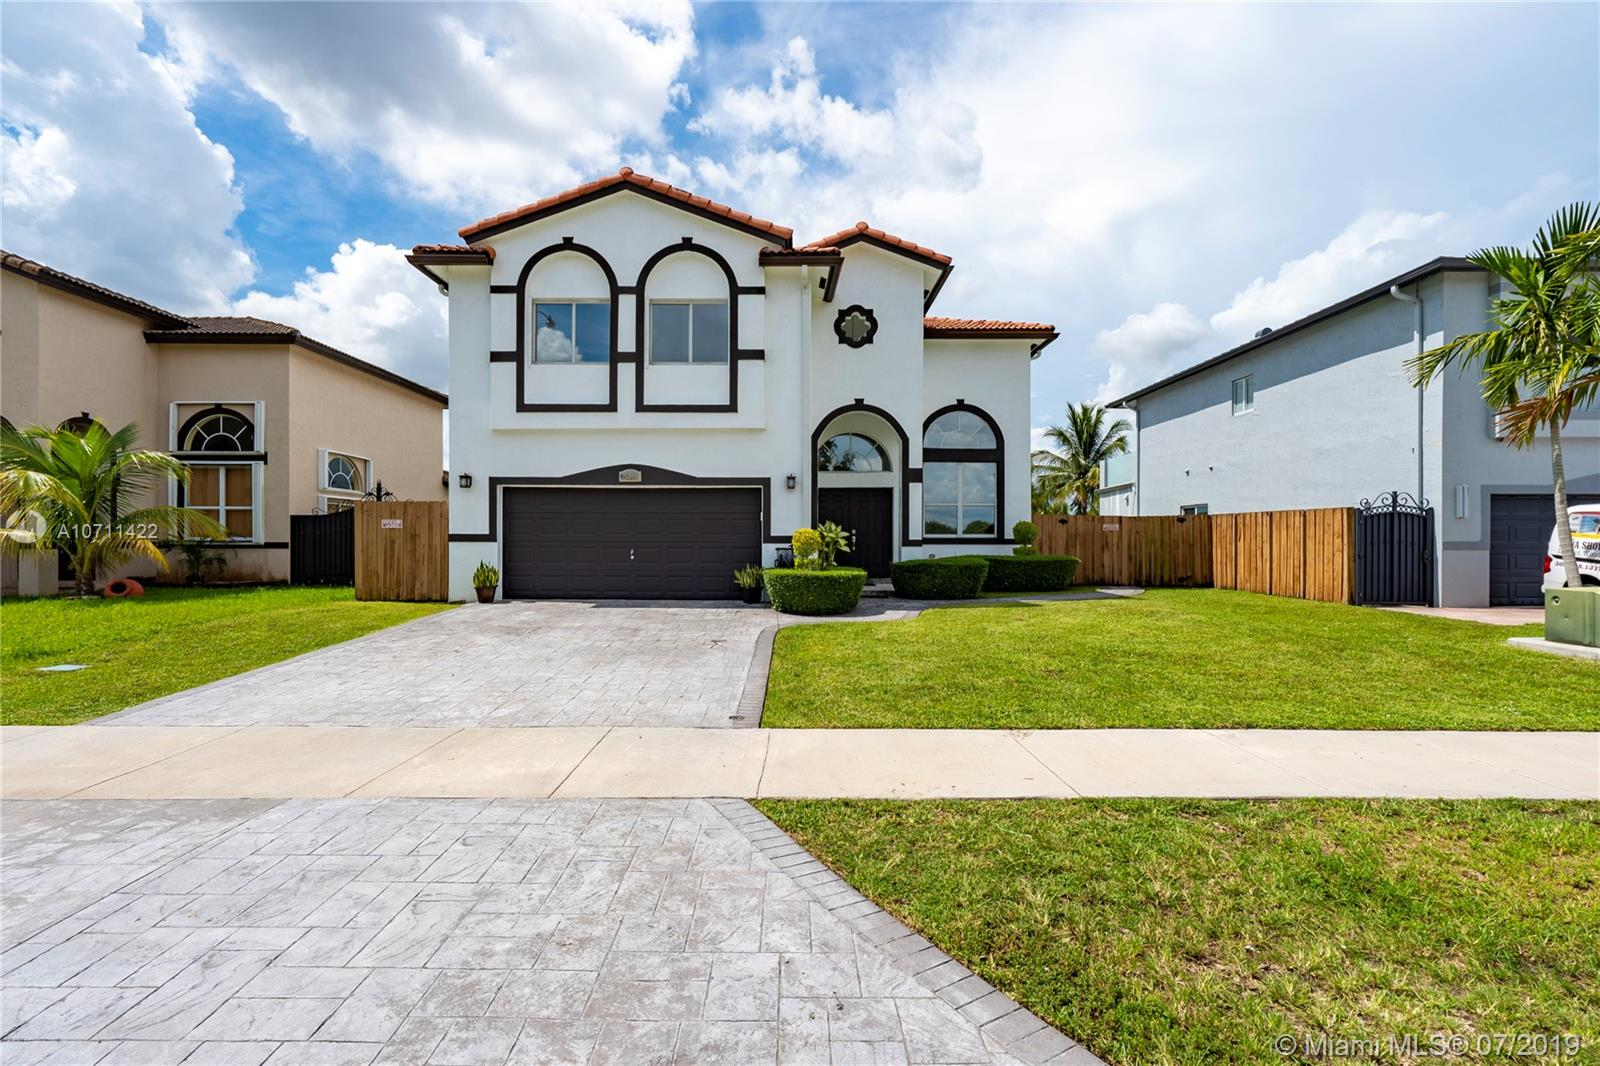 16100 SW 60th St, Kendall West, Florida